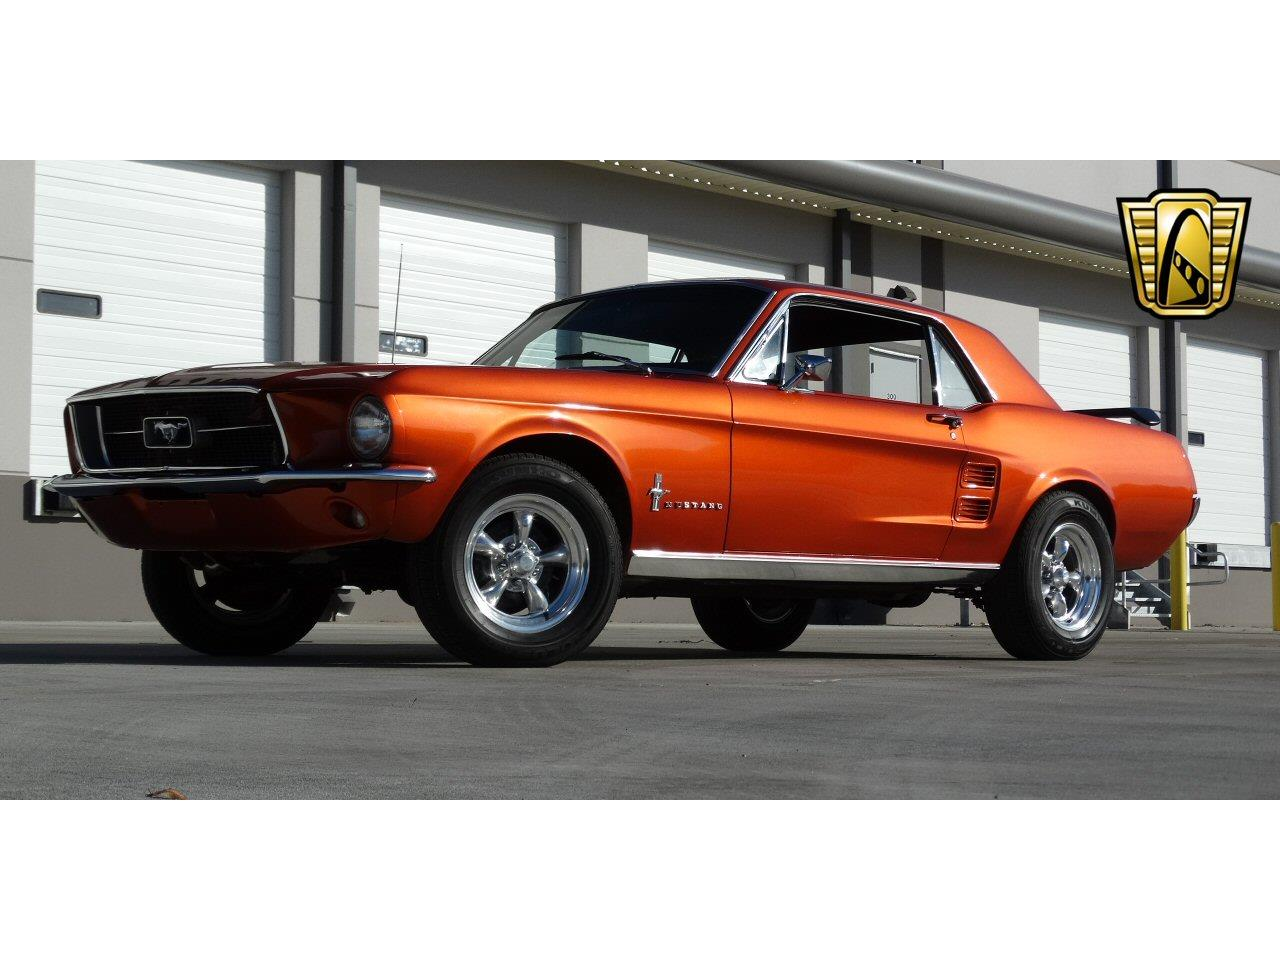 Large Picture of Classic '67 Mustang located in Alpharetta Georgia - $19,995.00 Offered by Gateway Classic Cars - Atlanta - KF5L